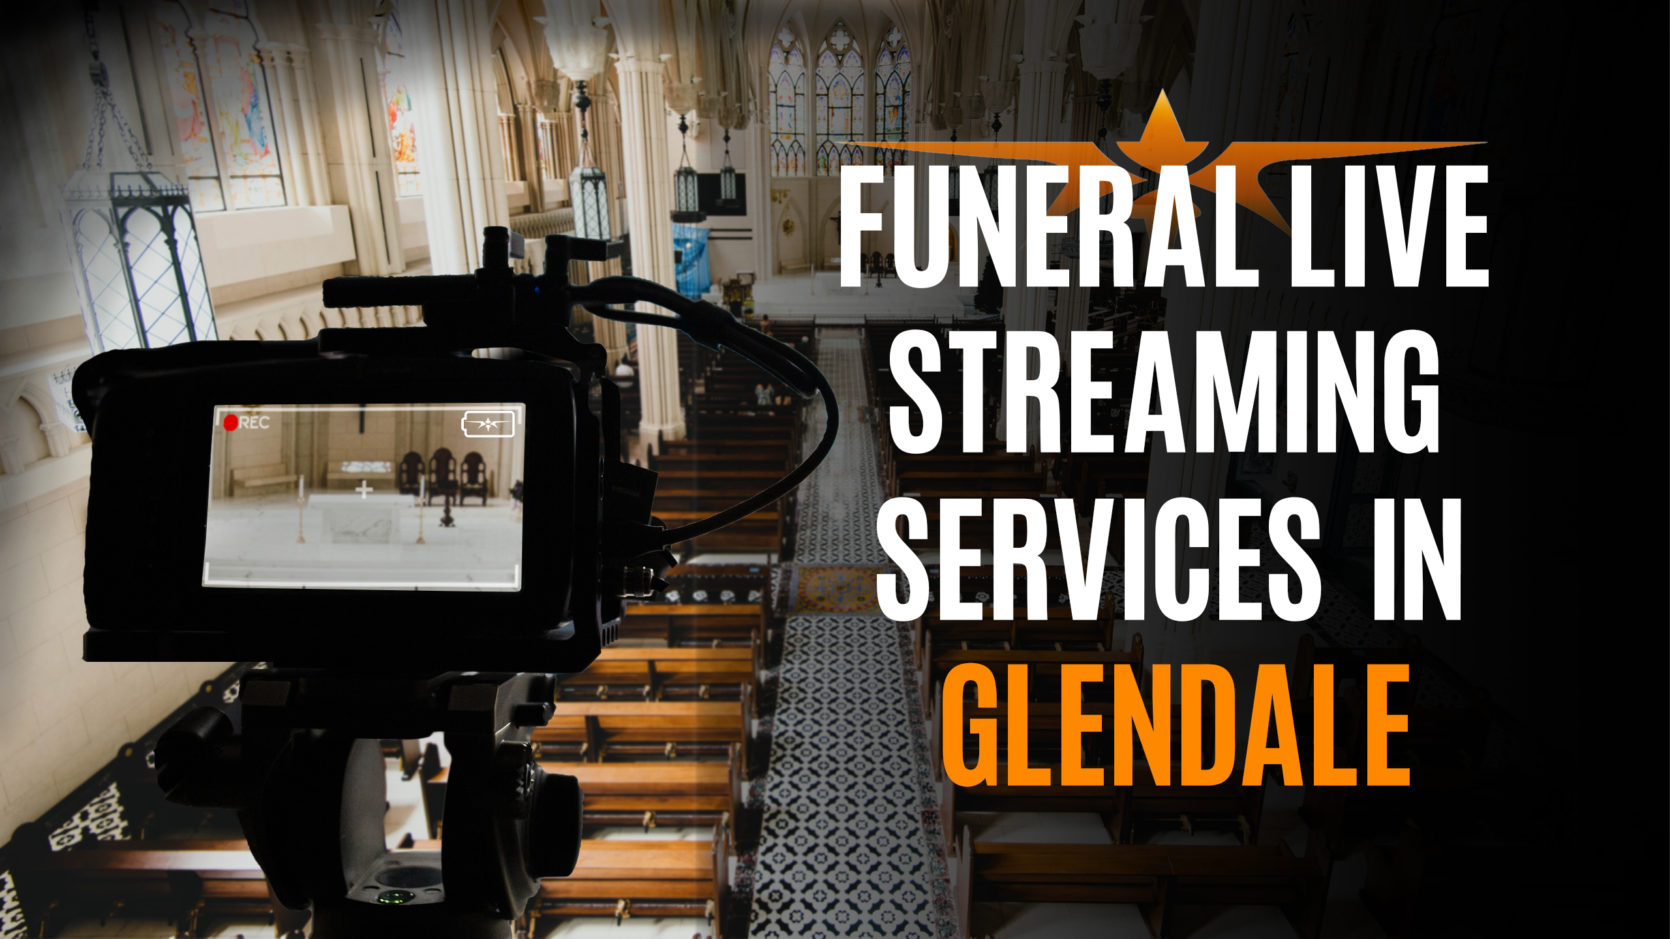 Funeral Live Streaming Services in Glendale